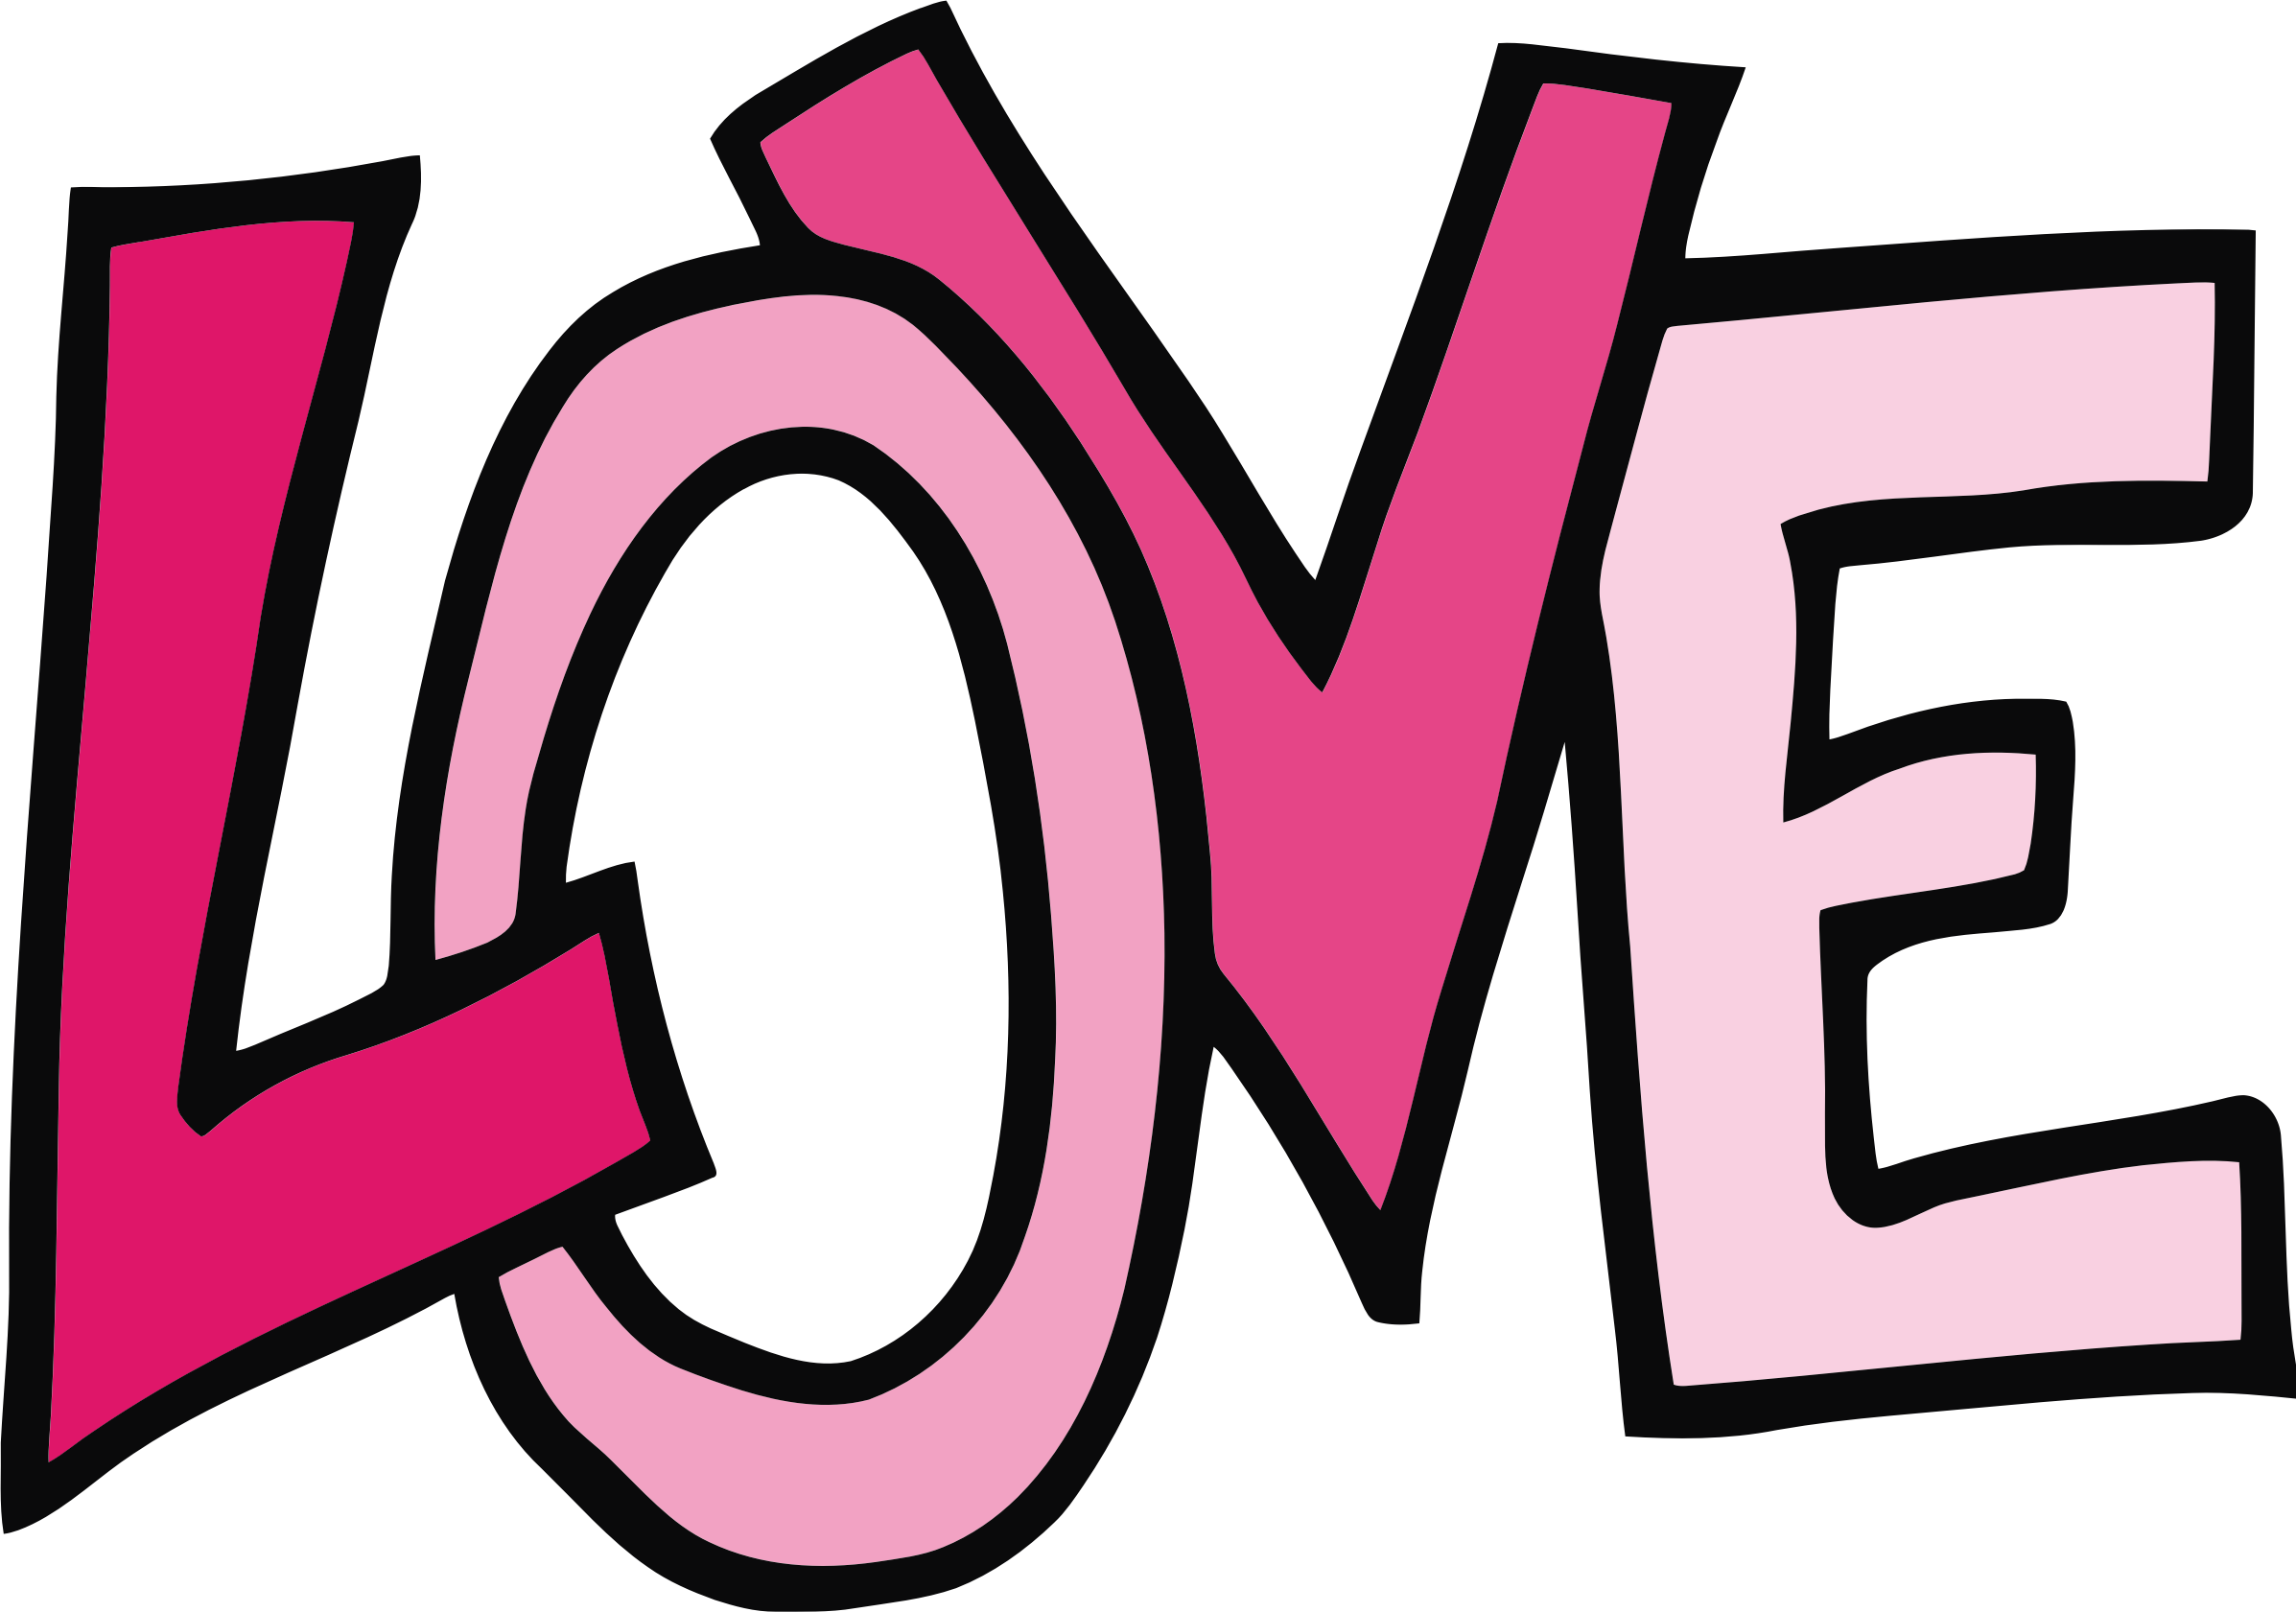 Kind clipart loved. Love text